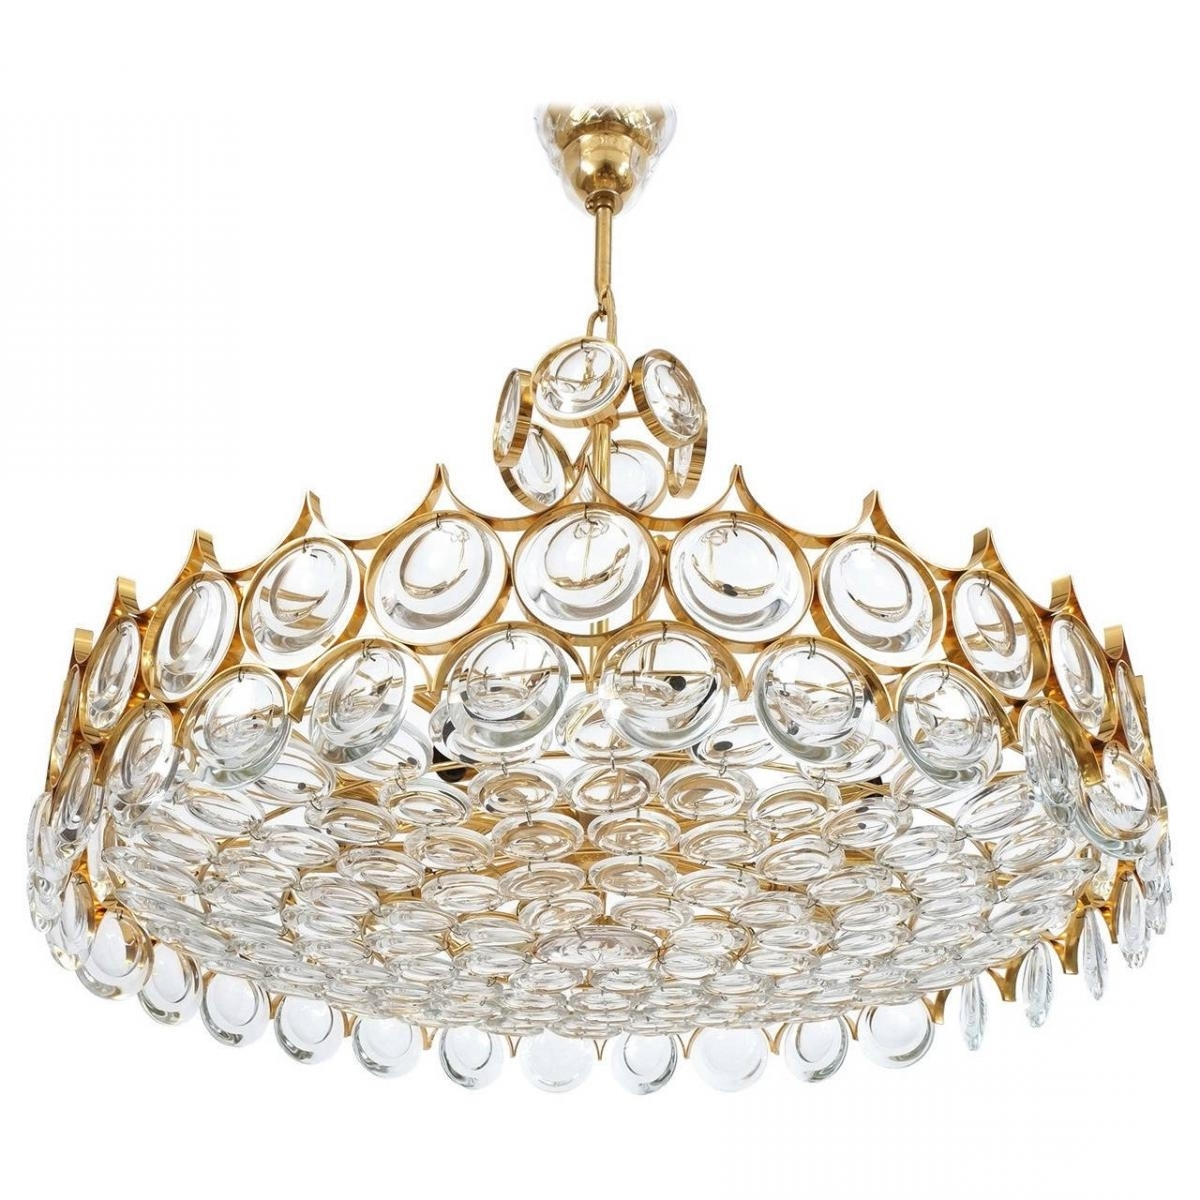 Widely Used Vintage Large Gilded Brass And Glass Chandelierpalwa For Sale At With Regard To Brass And Glass Chandelier (View 10 of 20)